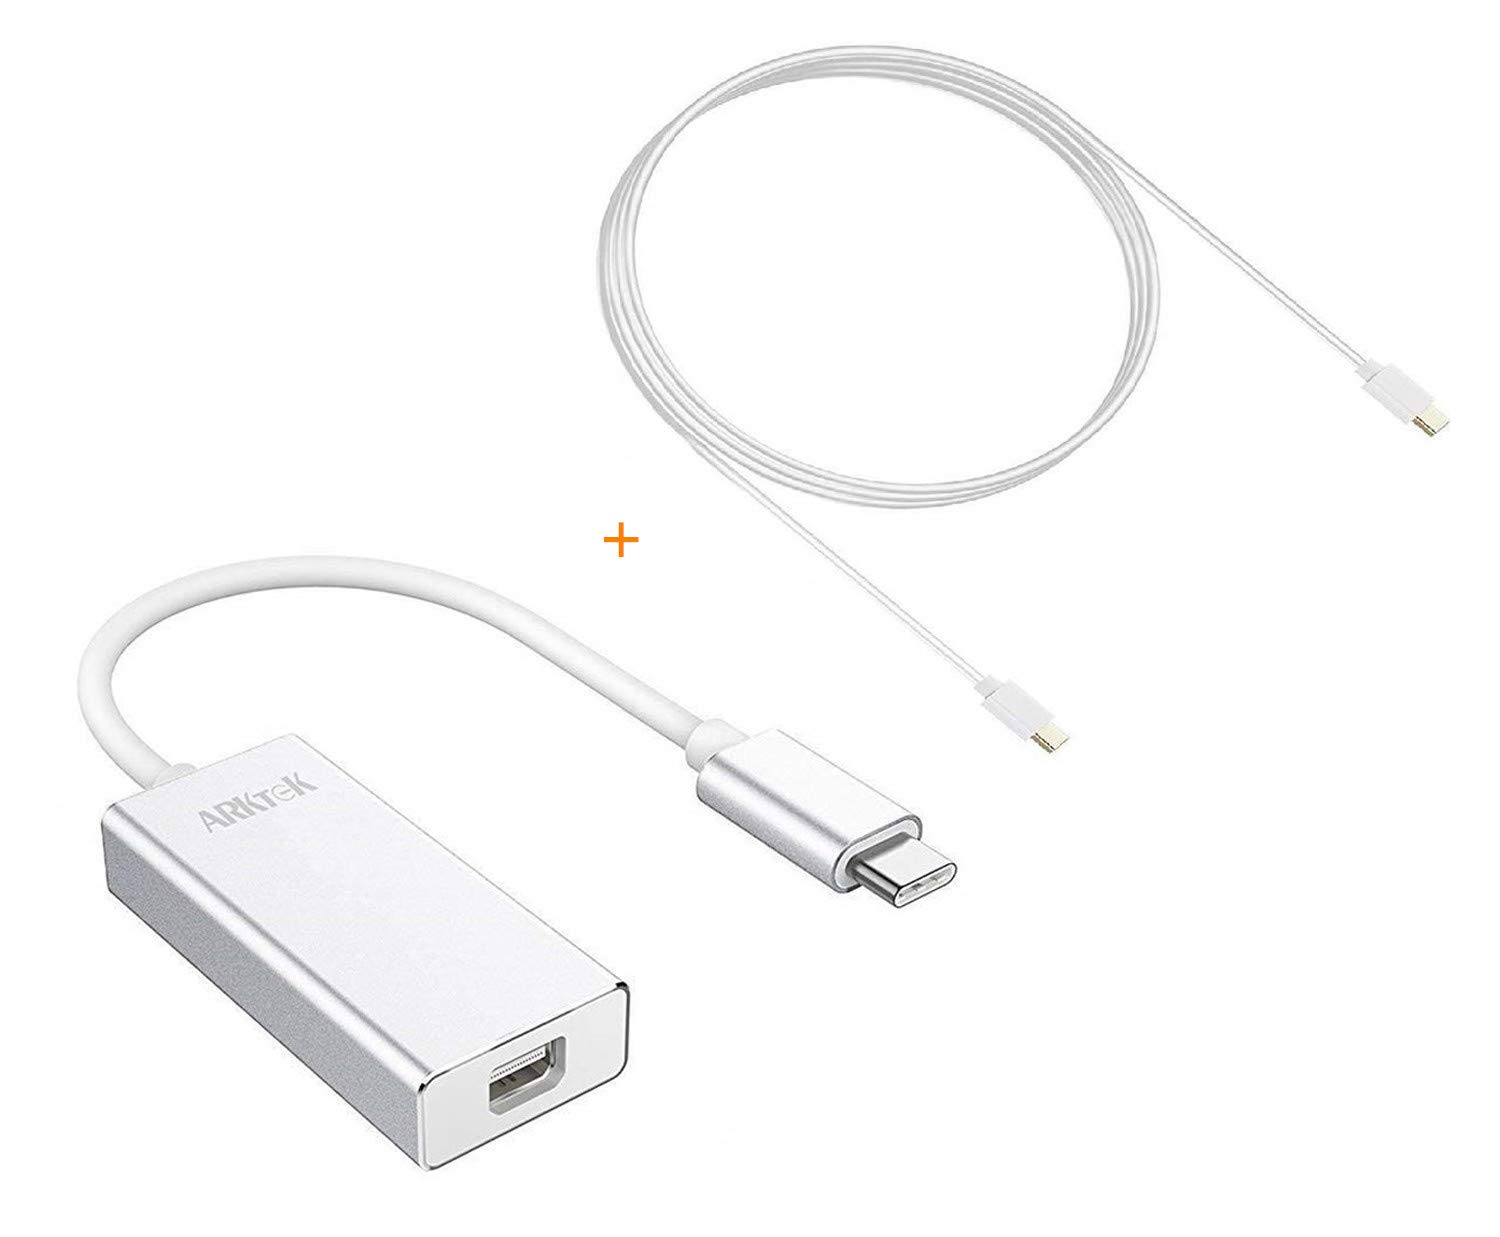 ARKTEK USB-C to Mini DP Adapter with Mini DP Cable USB Type C (Thunderbolt 3 Compatible) to Mini DisplayPort 4K Cable Adapter for MacBook Chromebook Pixel and More atk-ctominidp3-ca